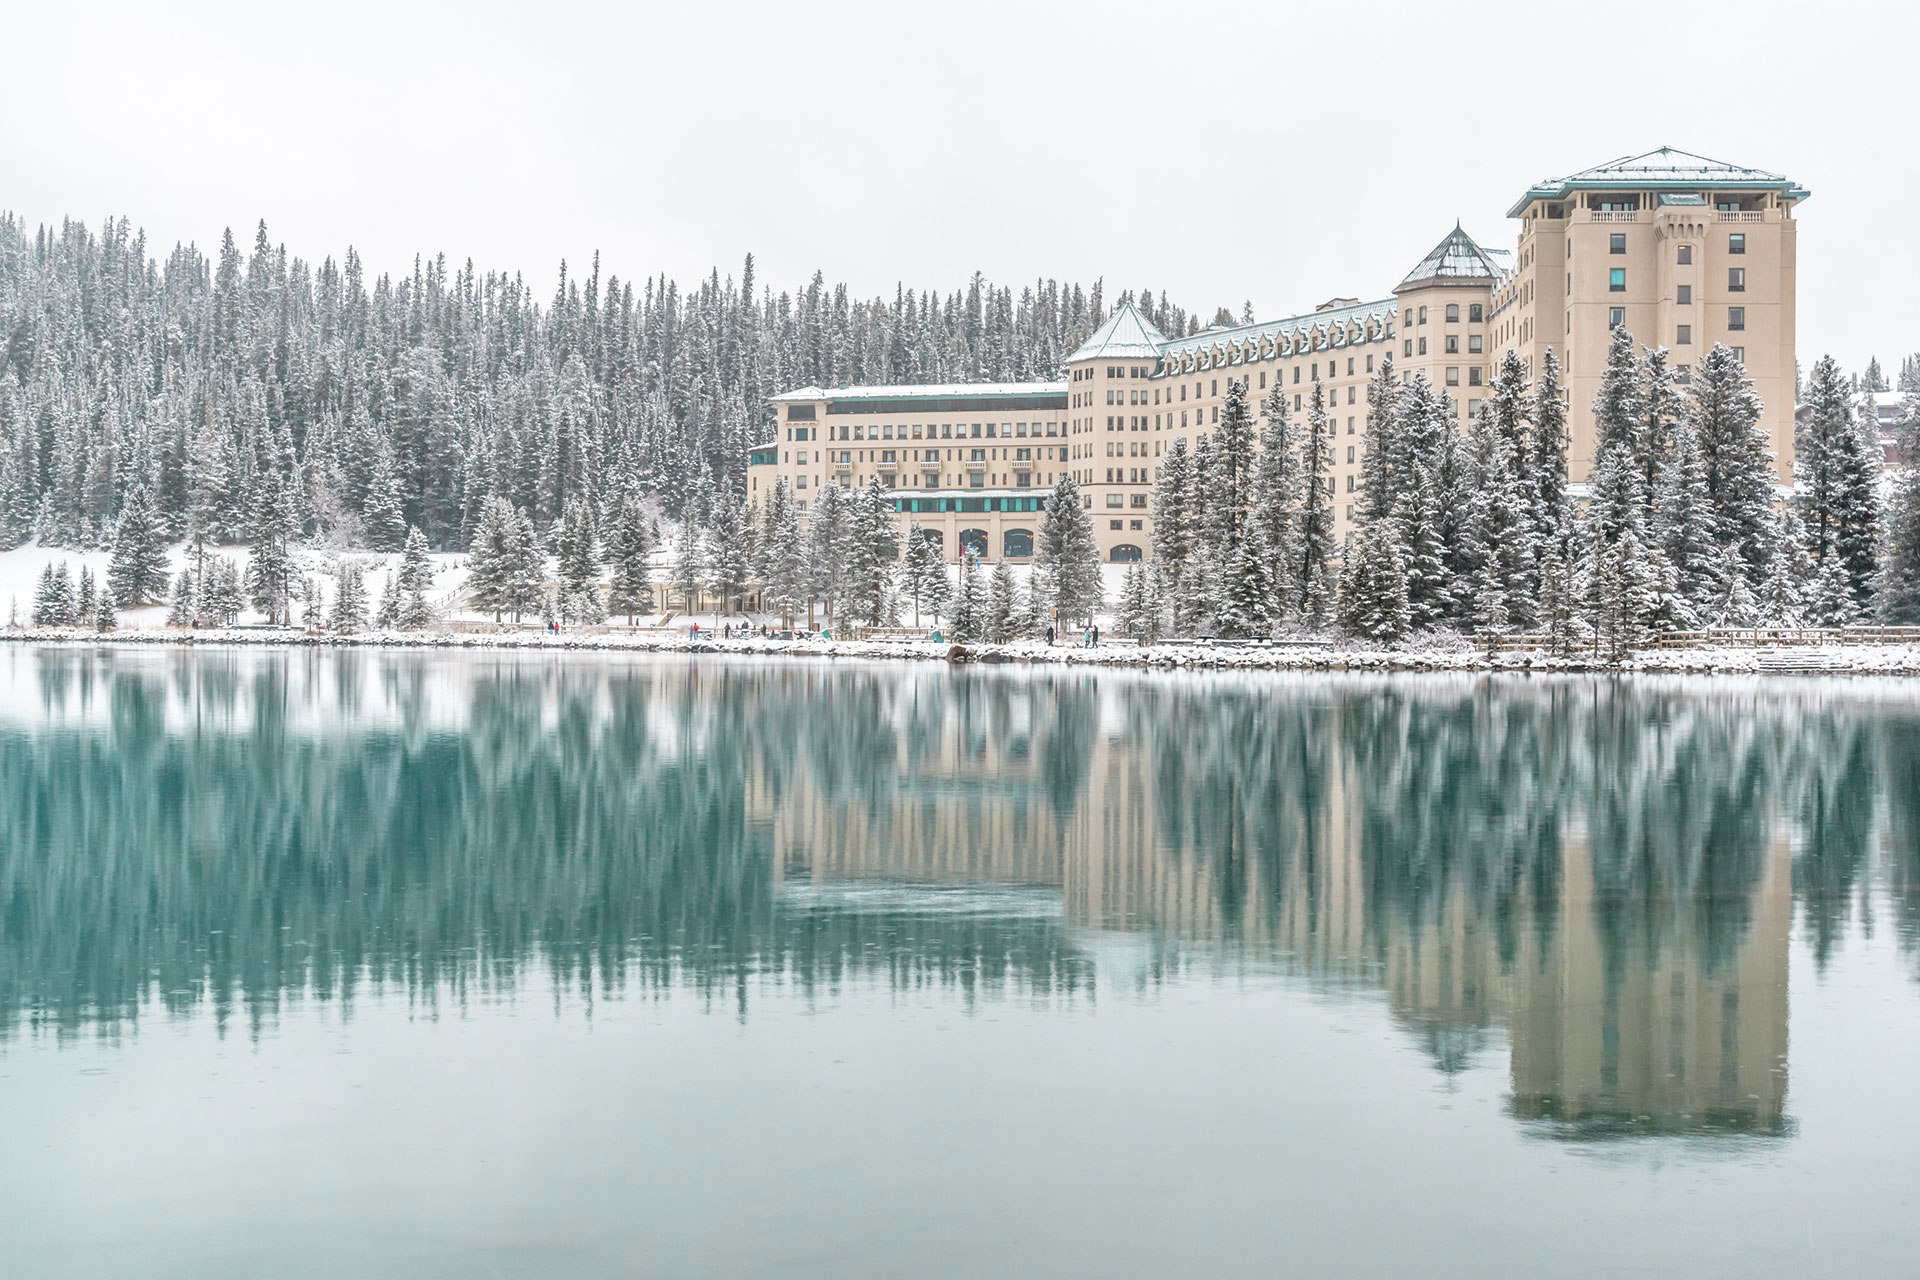 Lake Louise in Banff National Park, Canada during wintertime.